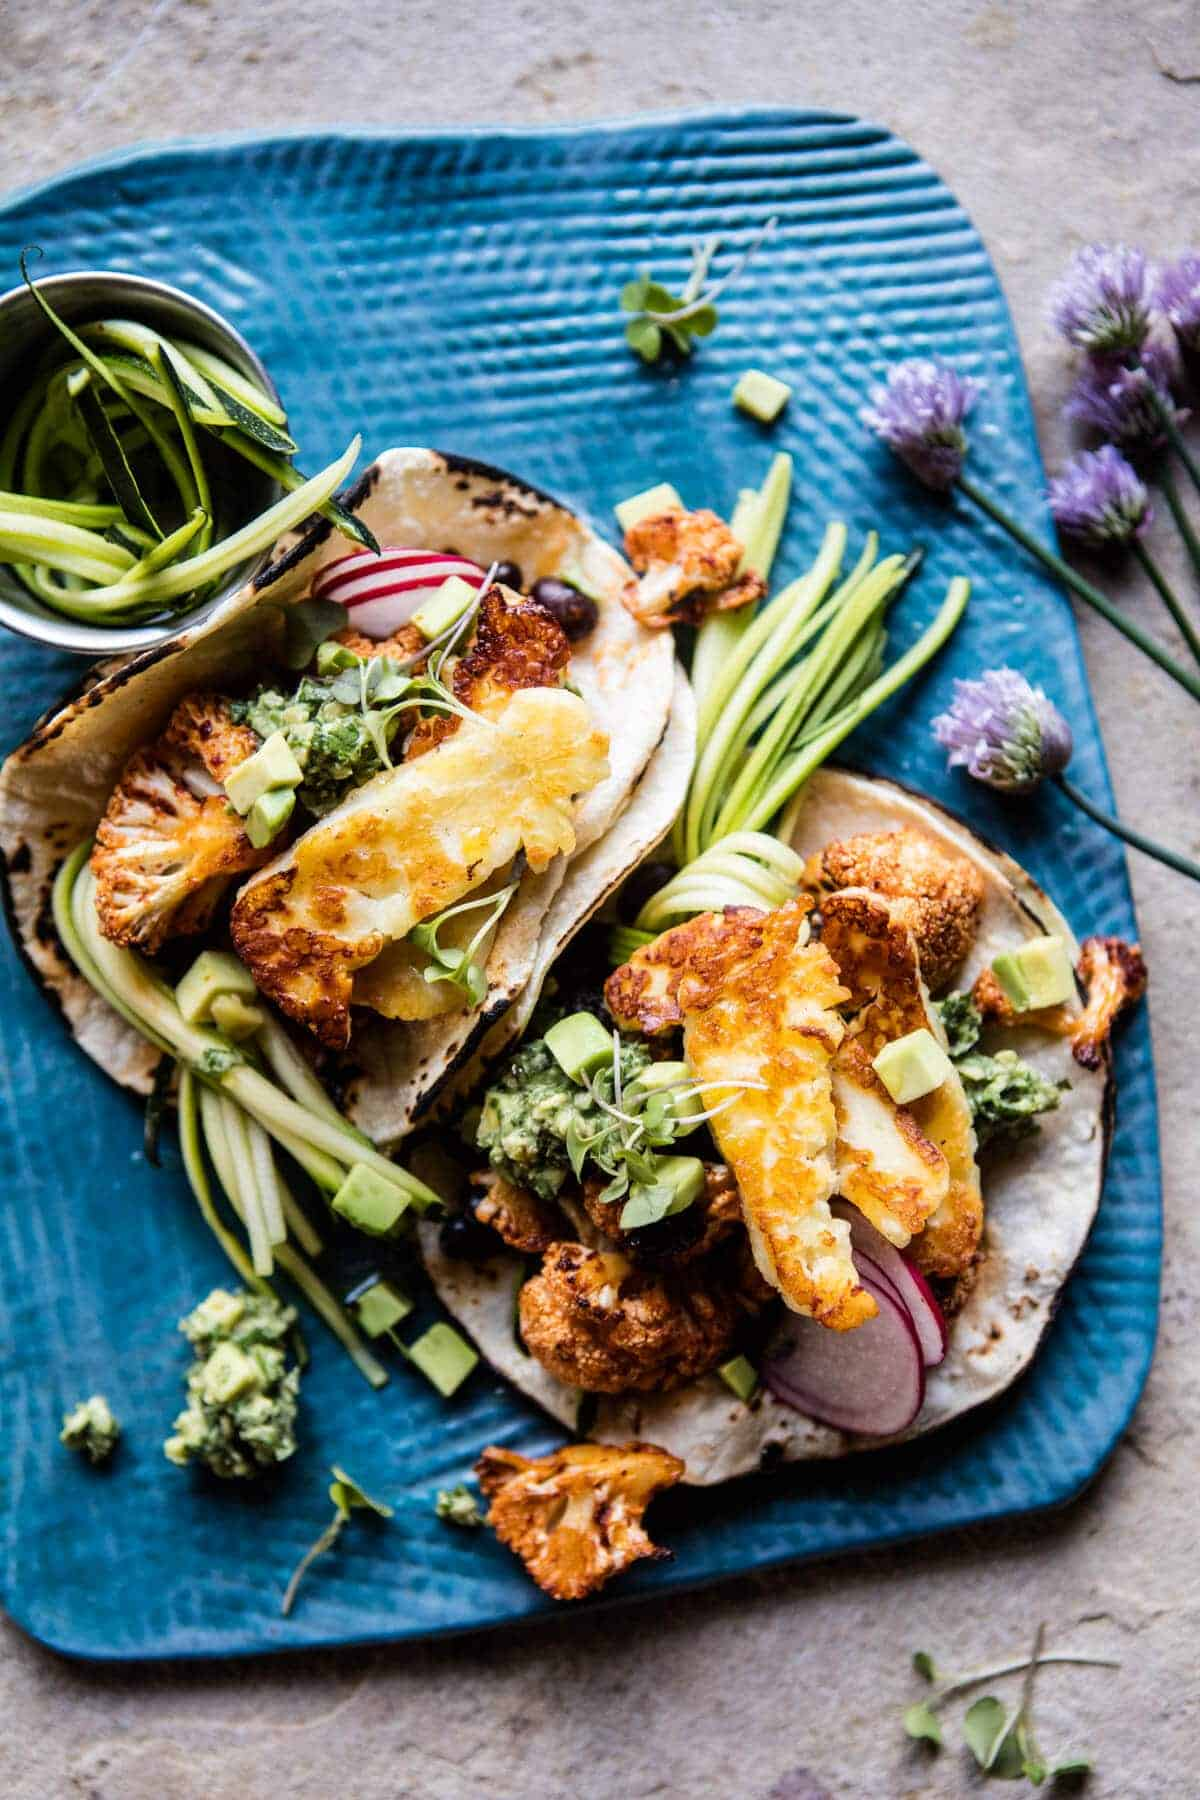 Roasted Cauliflower Fried Halloumi Tacos with Spicy Avocado Basil Salsa | halfbakedharvest.com @hbharvest